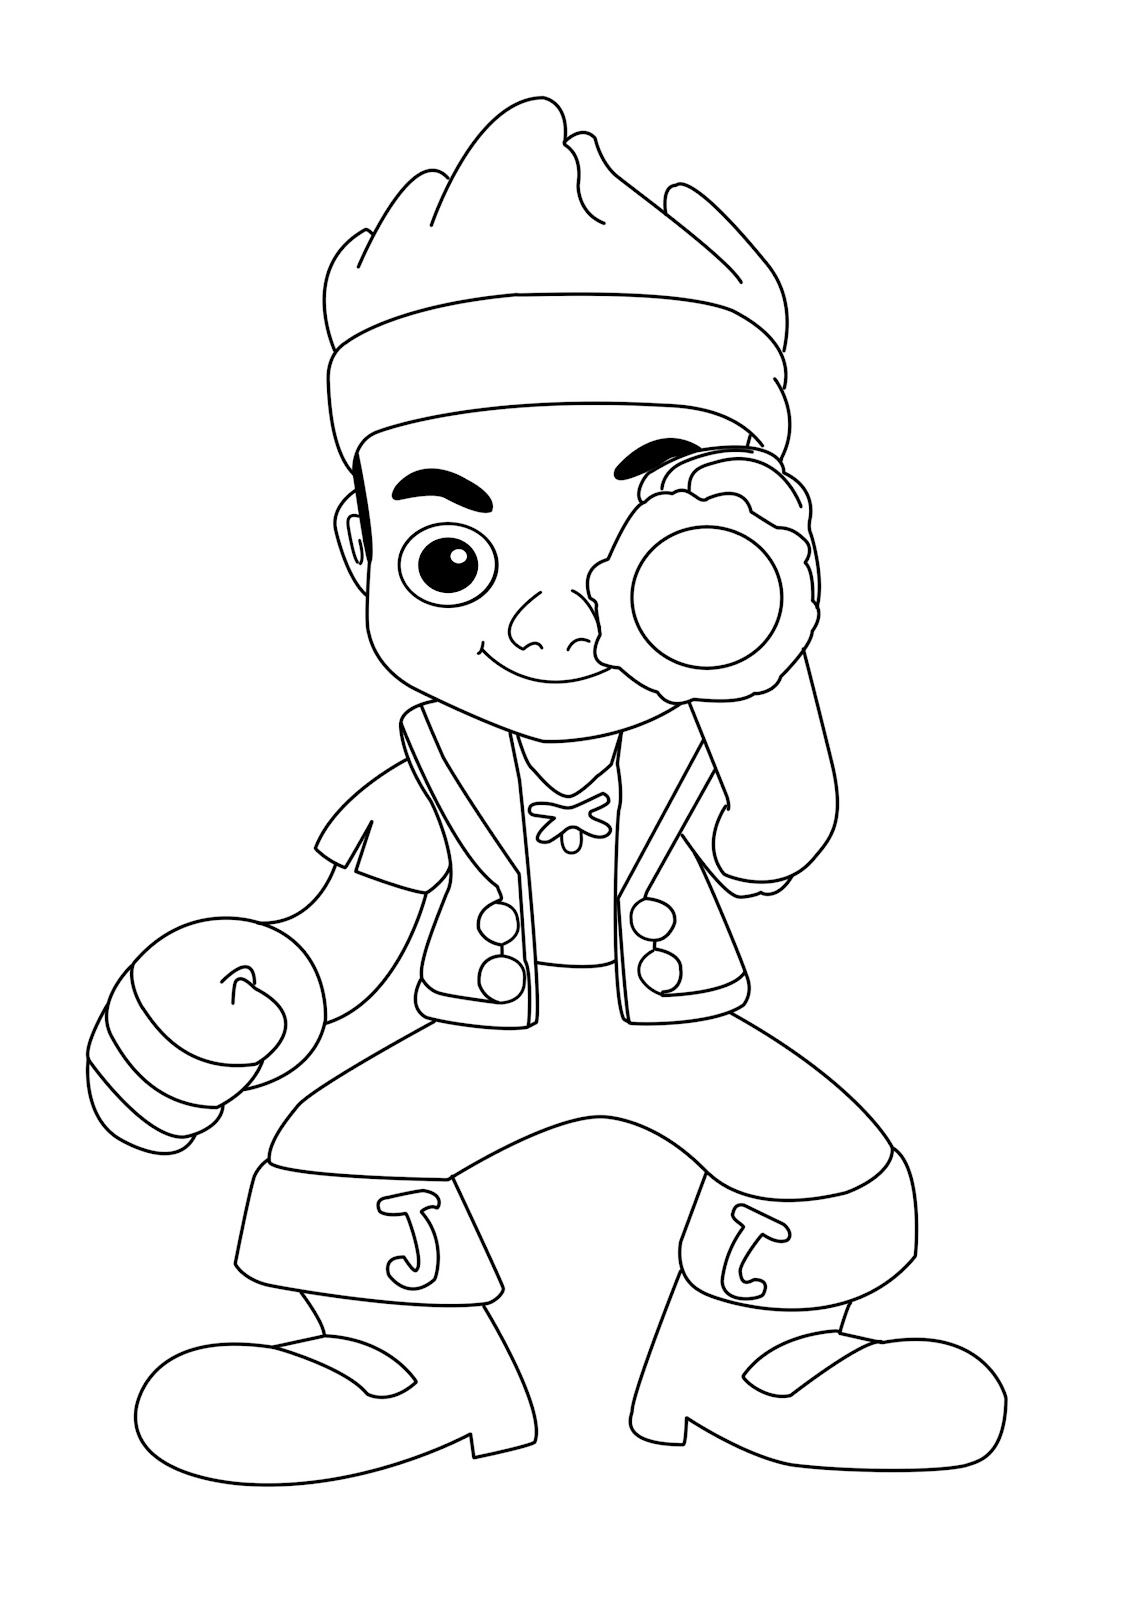 Colouring in halloween - Jake And The Neverland Pirates Halloween Coloring Pages K0dtsyq7l